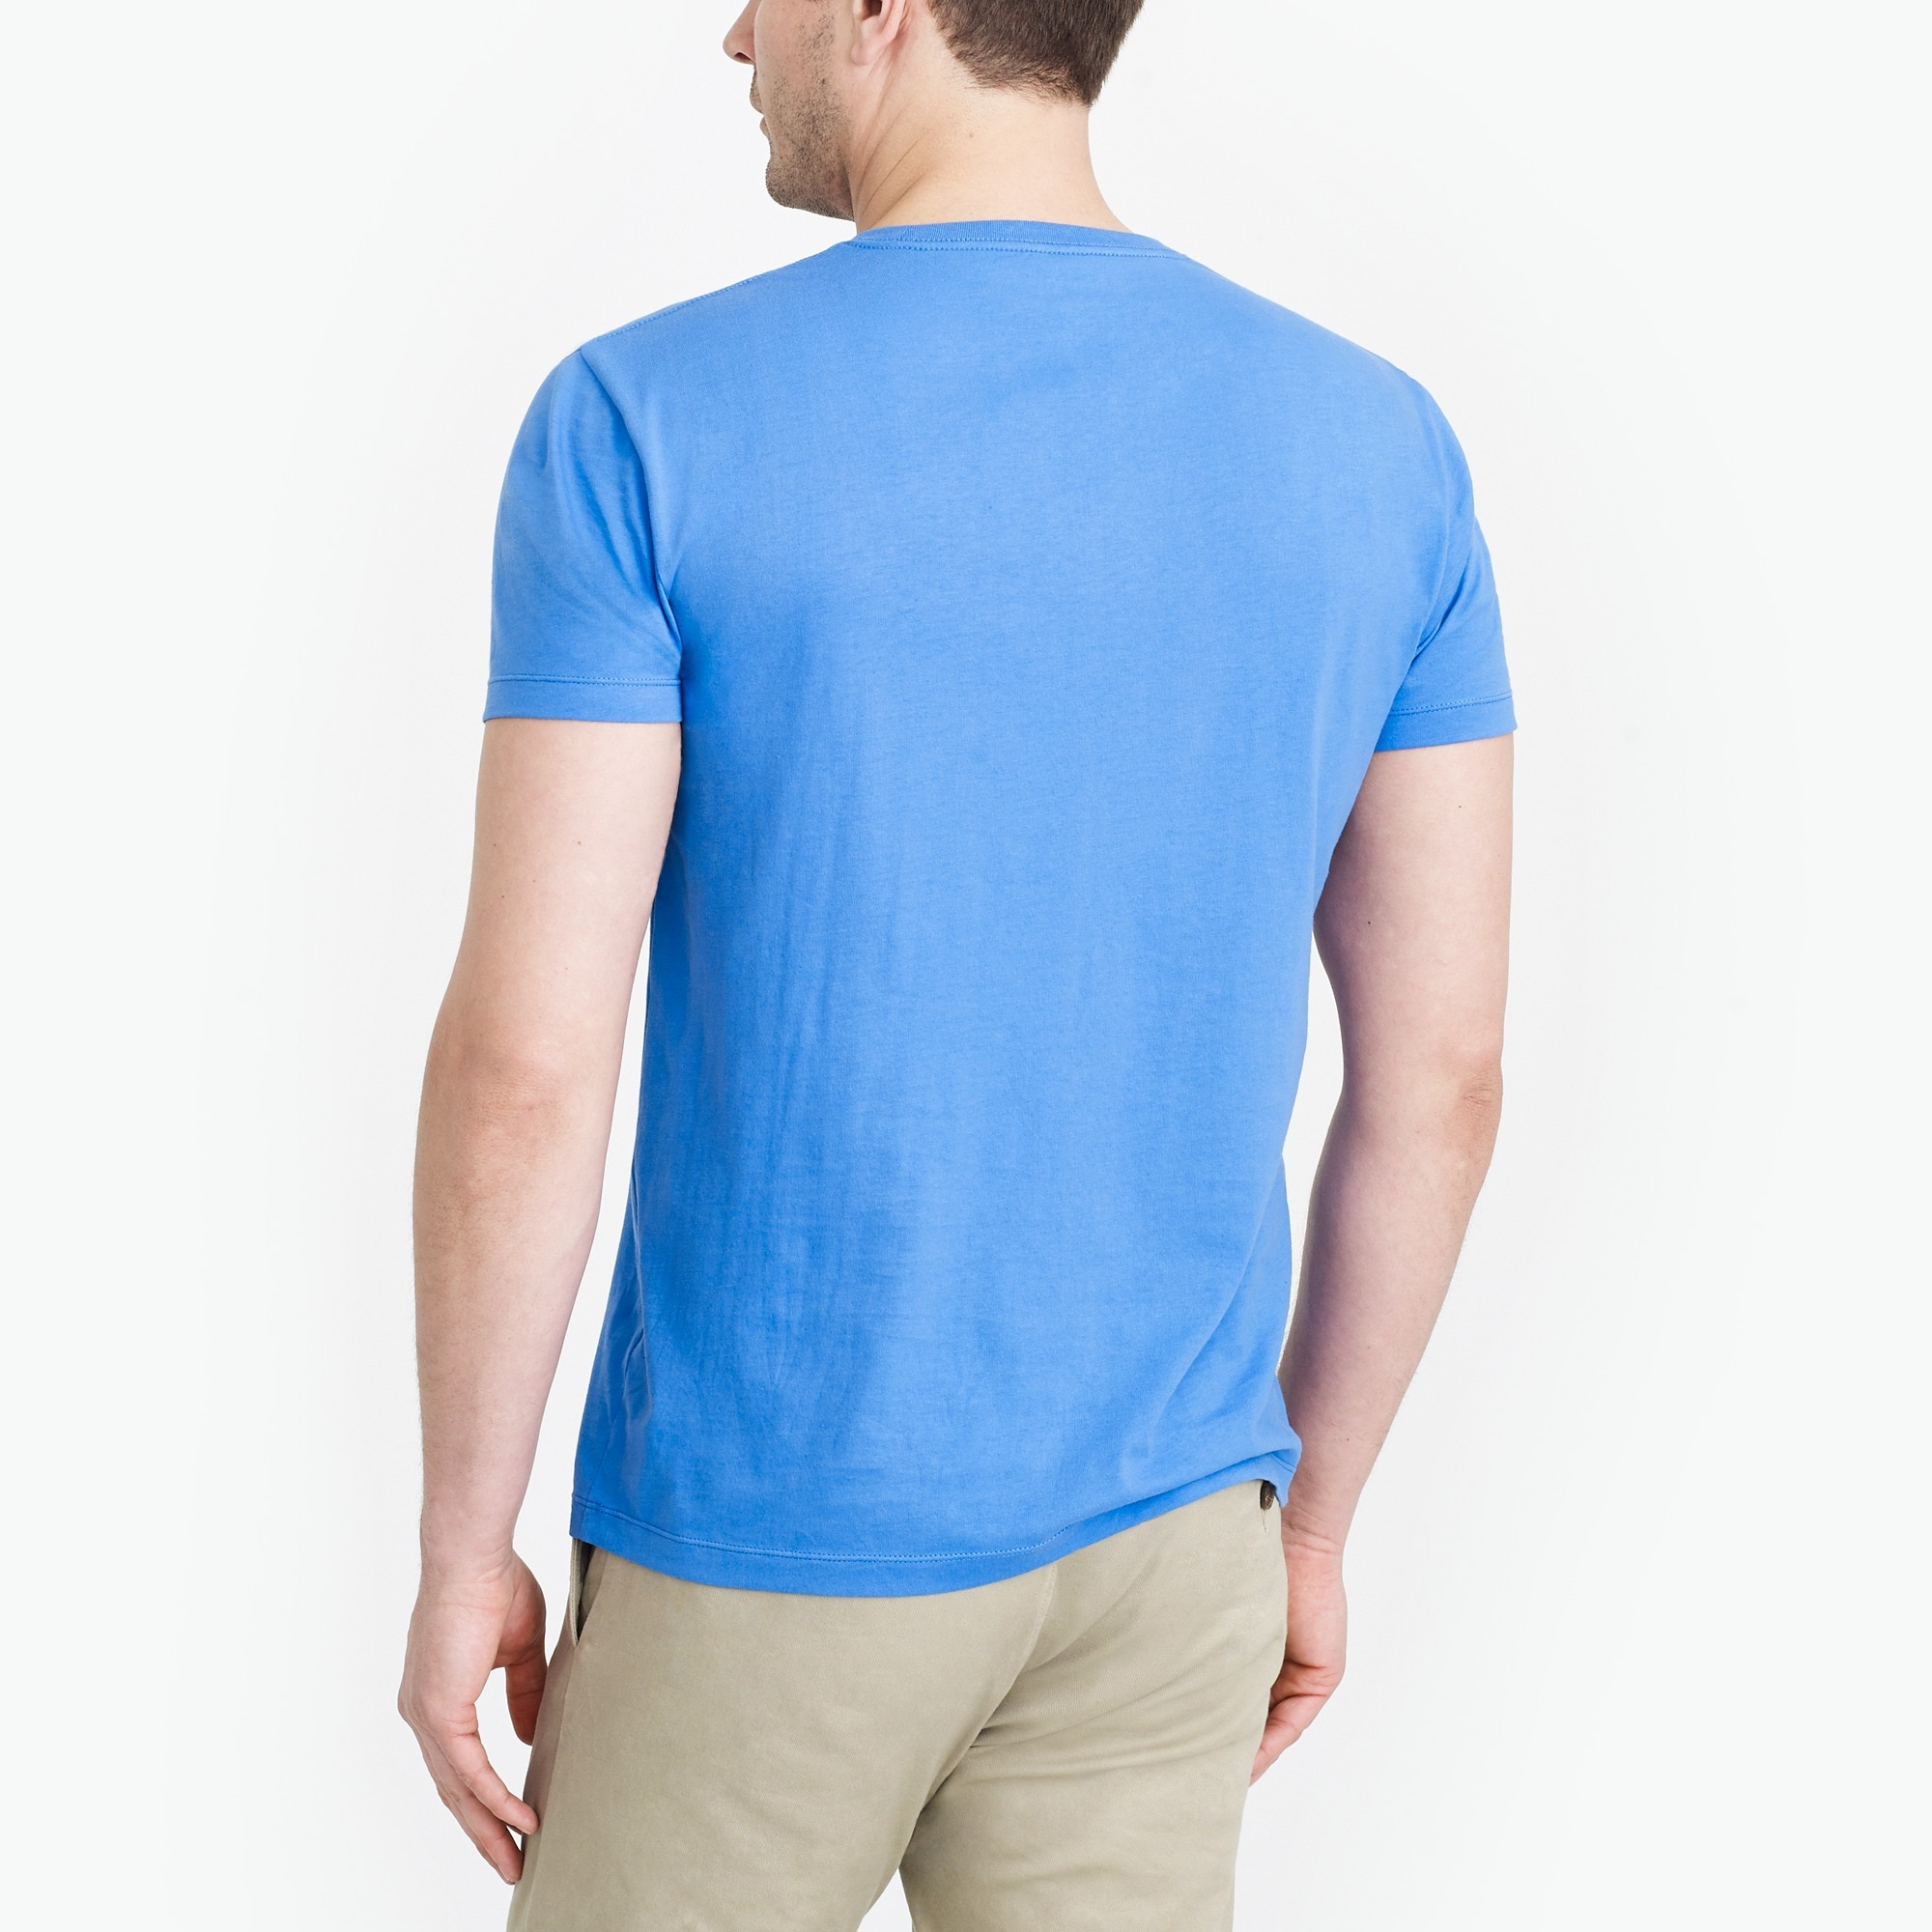 Image 3 for J.Crew Mercantile slim Broken-in pocket T-shirt